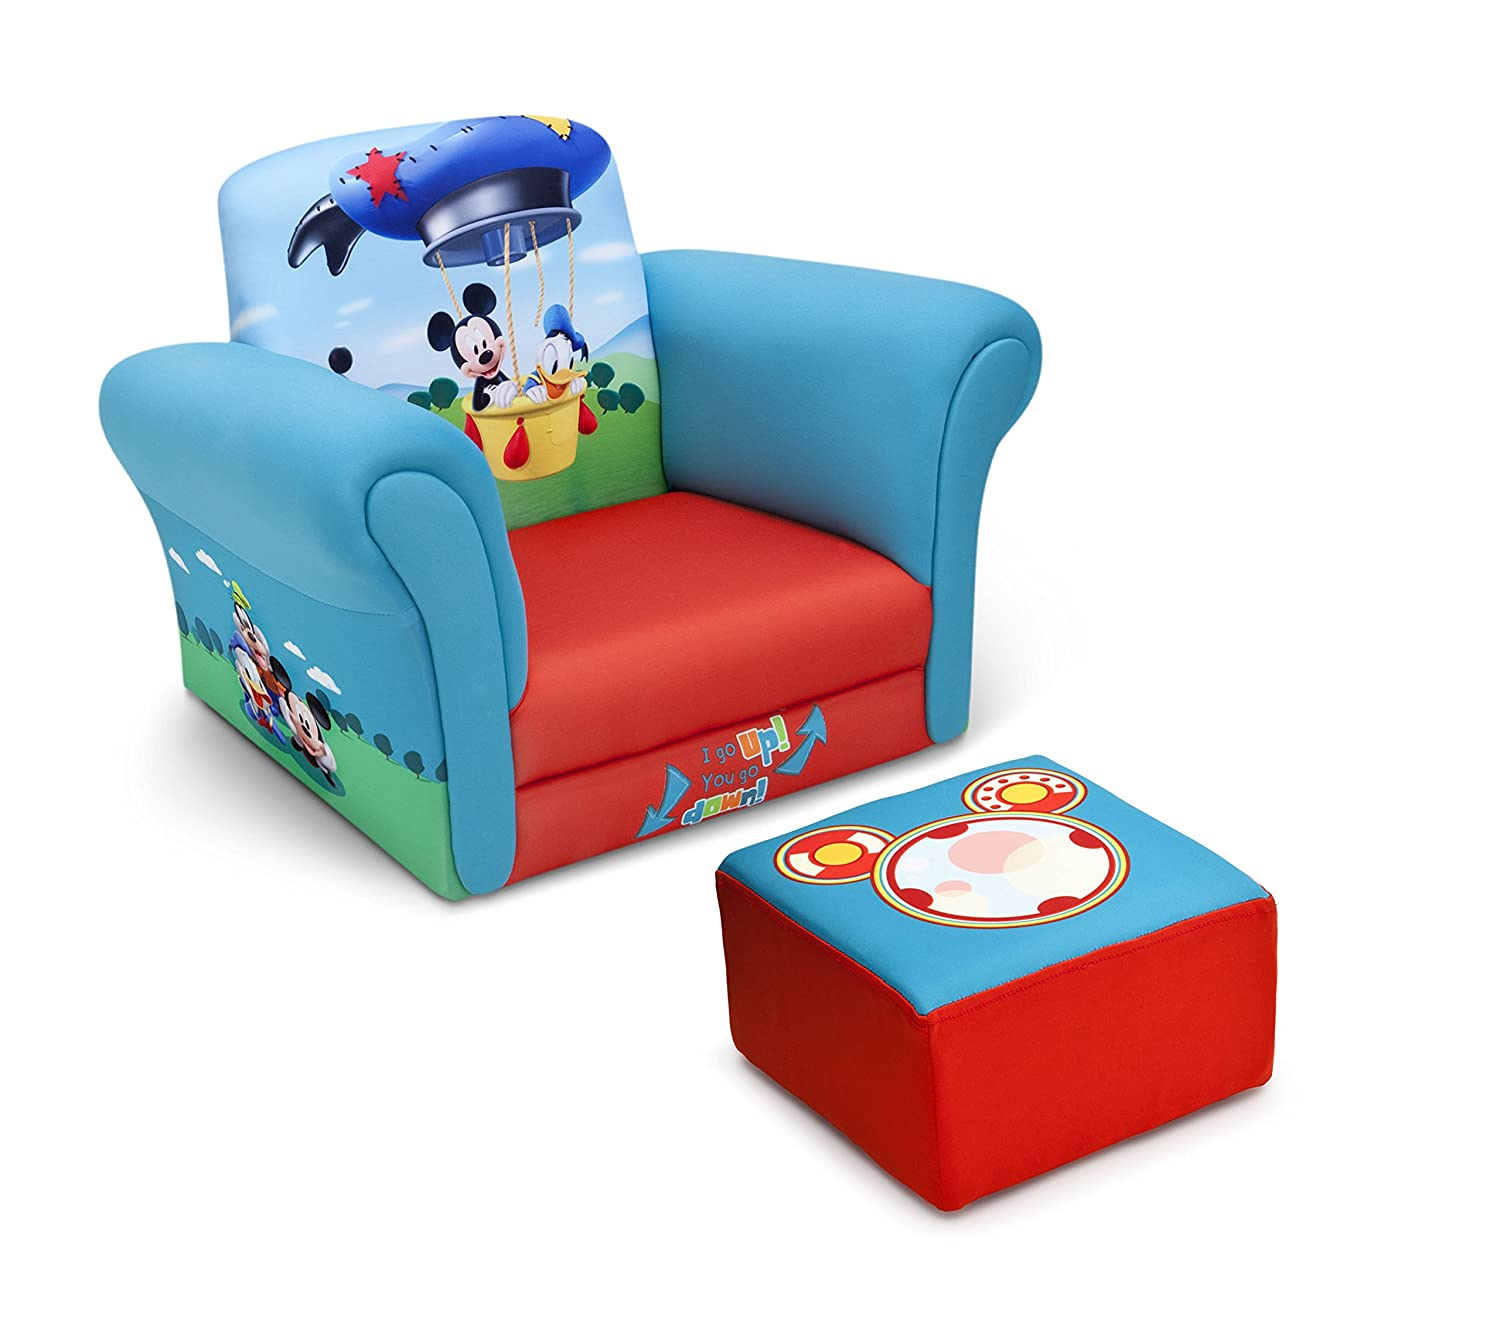 Ordinaire Amazon.com: Delta Children Upholstered Chair With Ottoman, Disney Mickey  Mouse: Baby